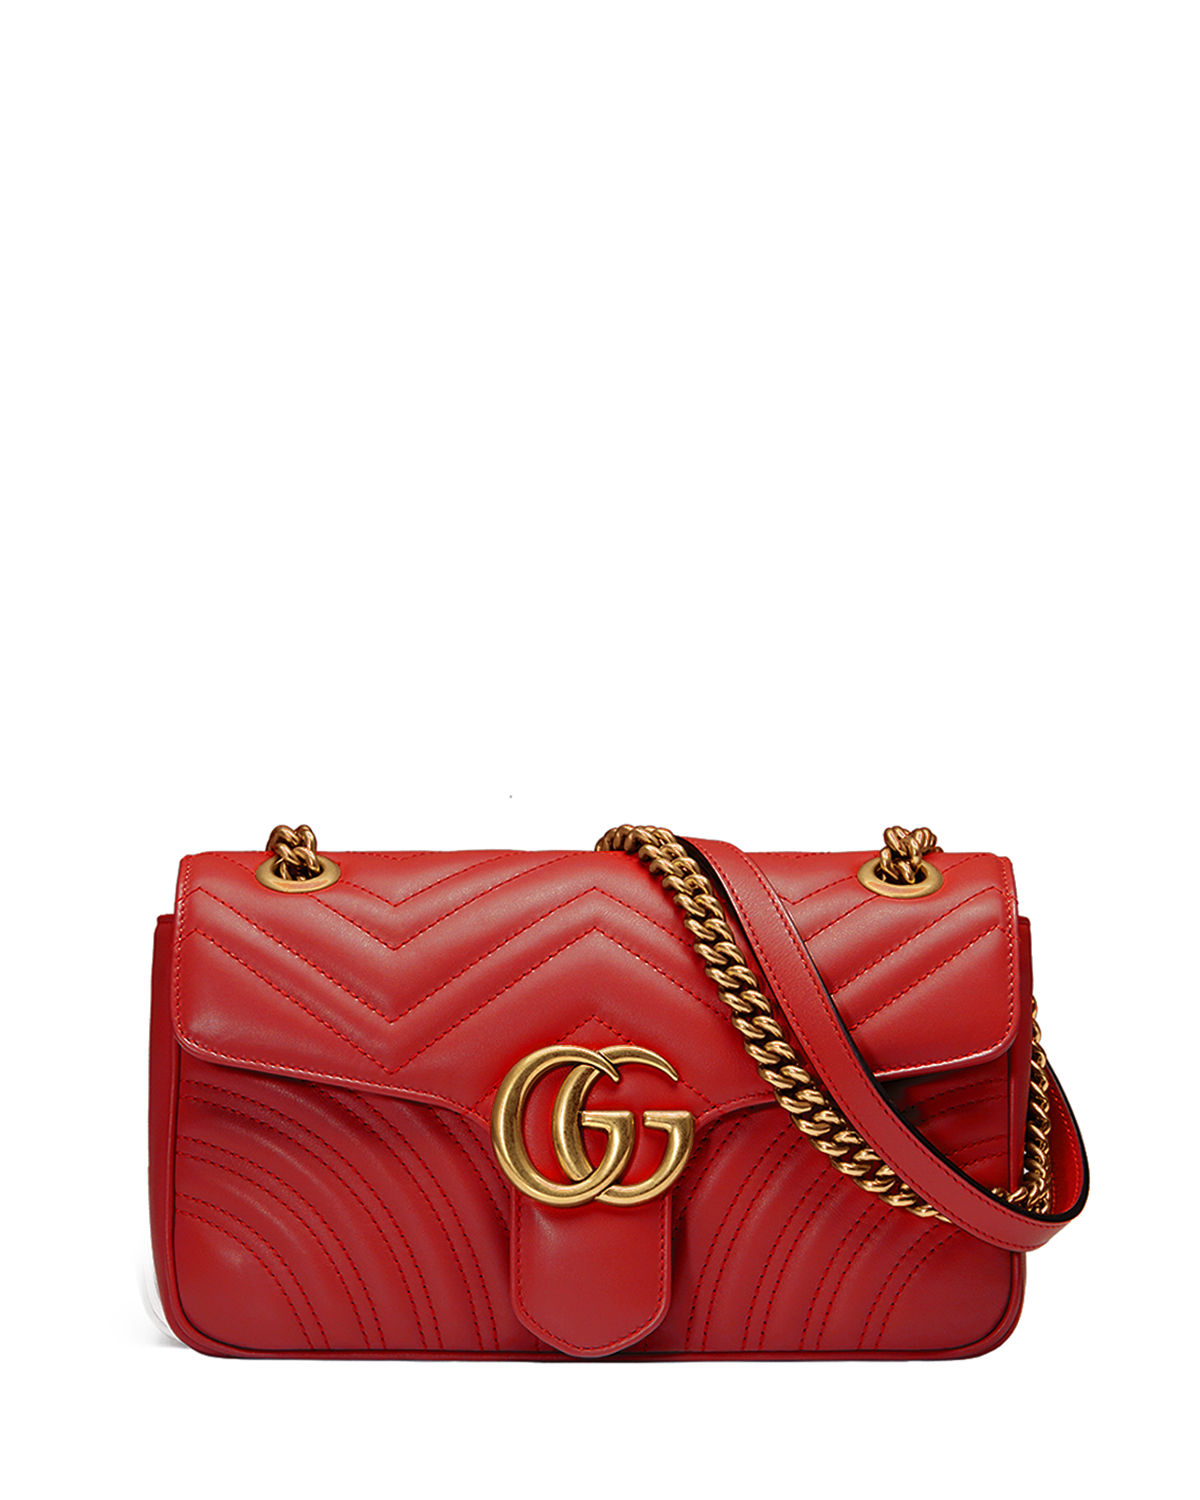 cab25770d2913 Gucci GG Marmont Small Matelasse Shoulder Bag